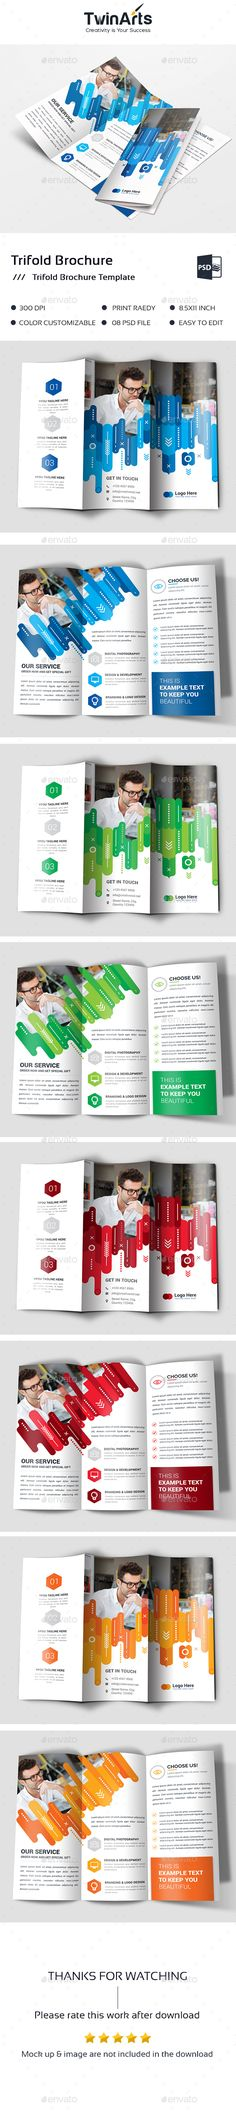 Inspirational Career Brochure Template Fair Poster Google Search